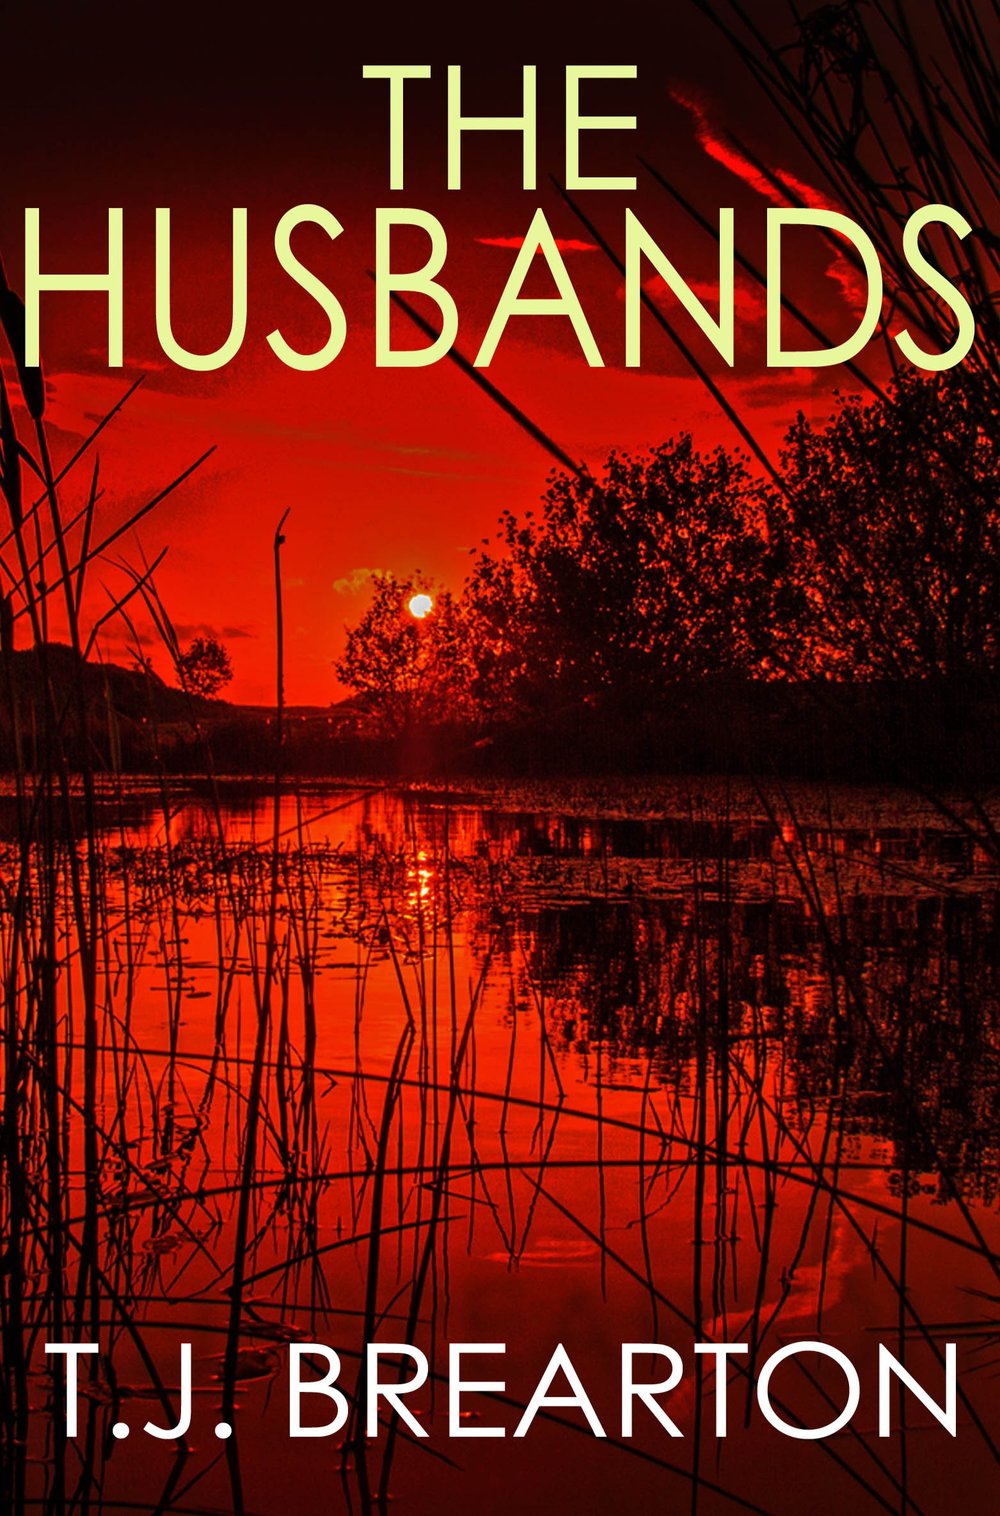 THE+HUSBANDS+cover+3.jpg